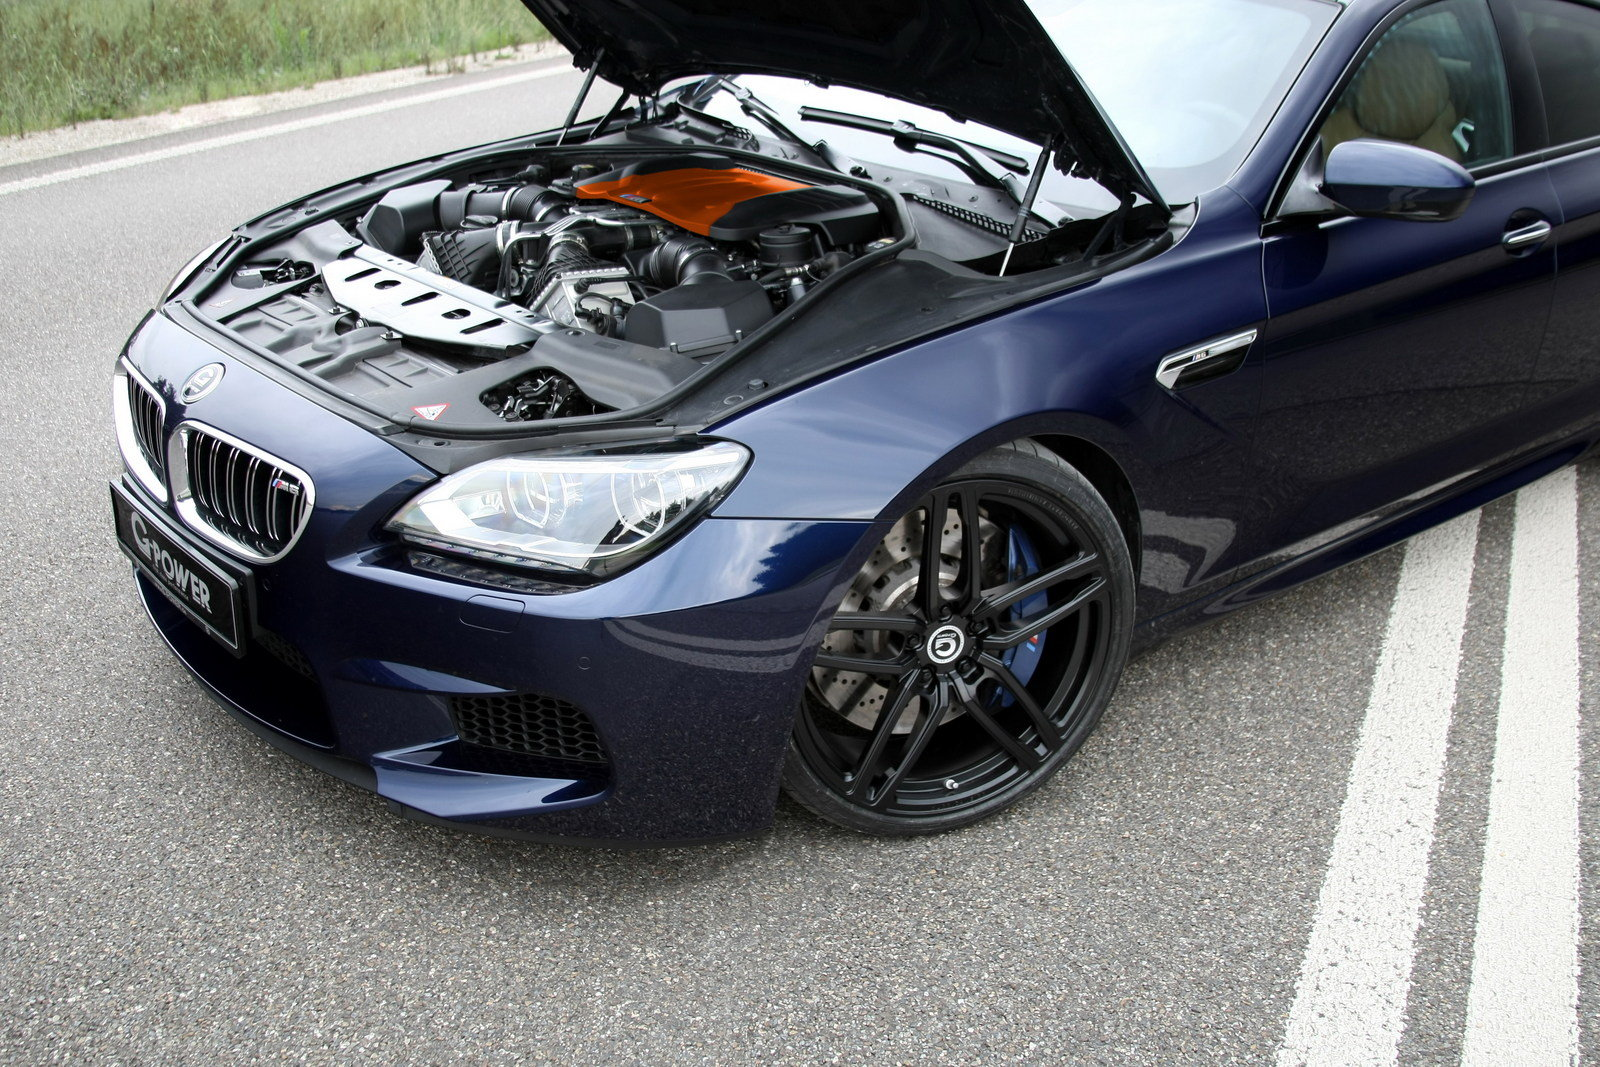 2016 bmw m6 gran coupe by g power picture 671578 car review top speed. Black Bedroom Furniture Sets. Home Design Ideas